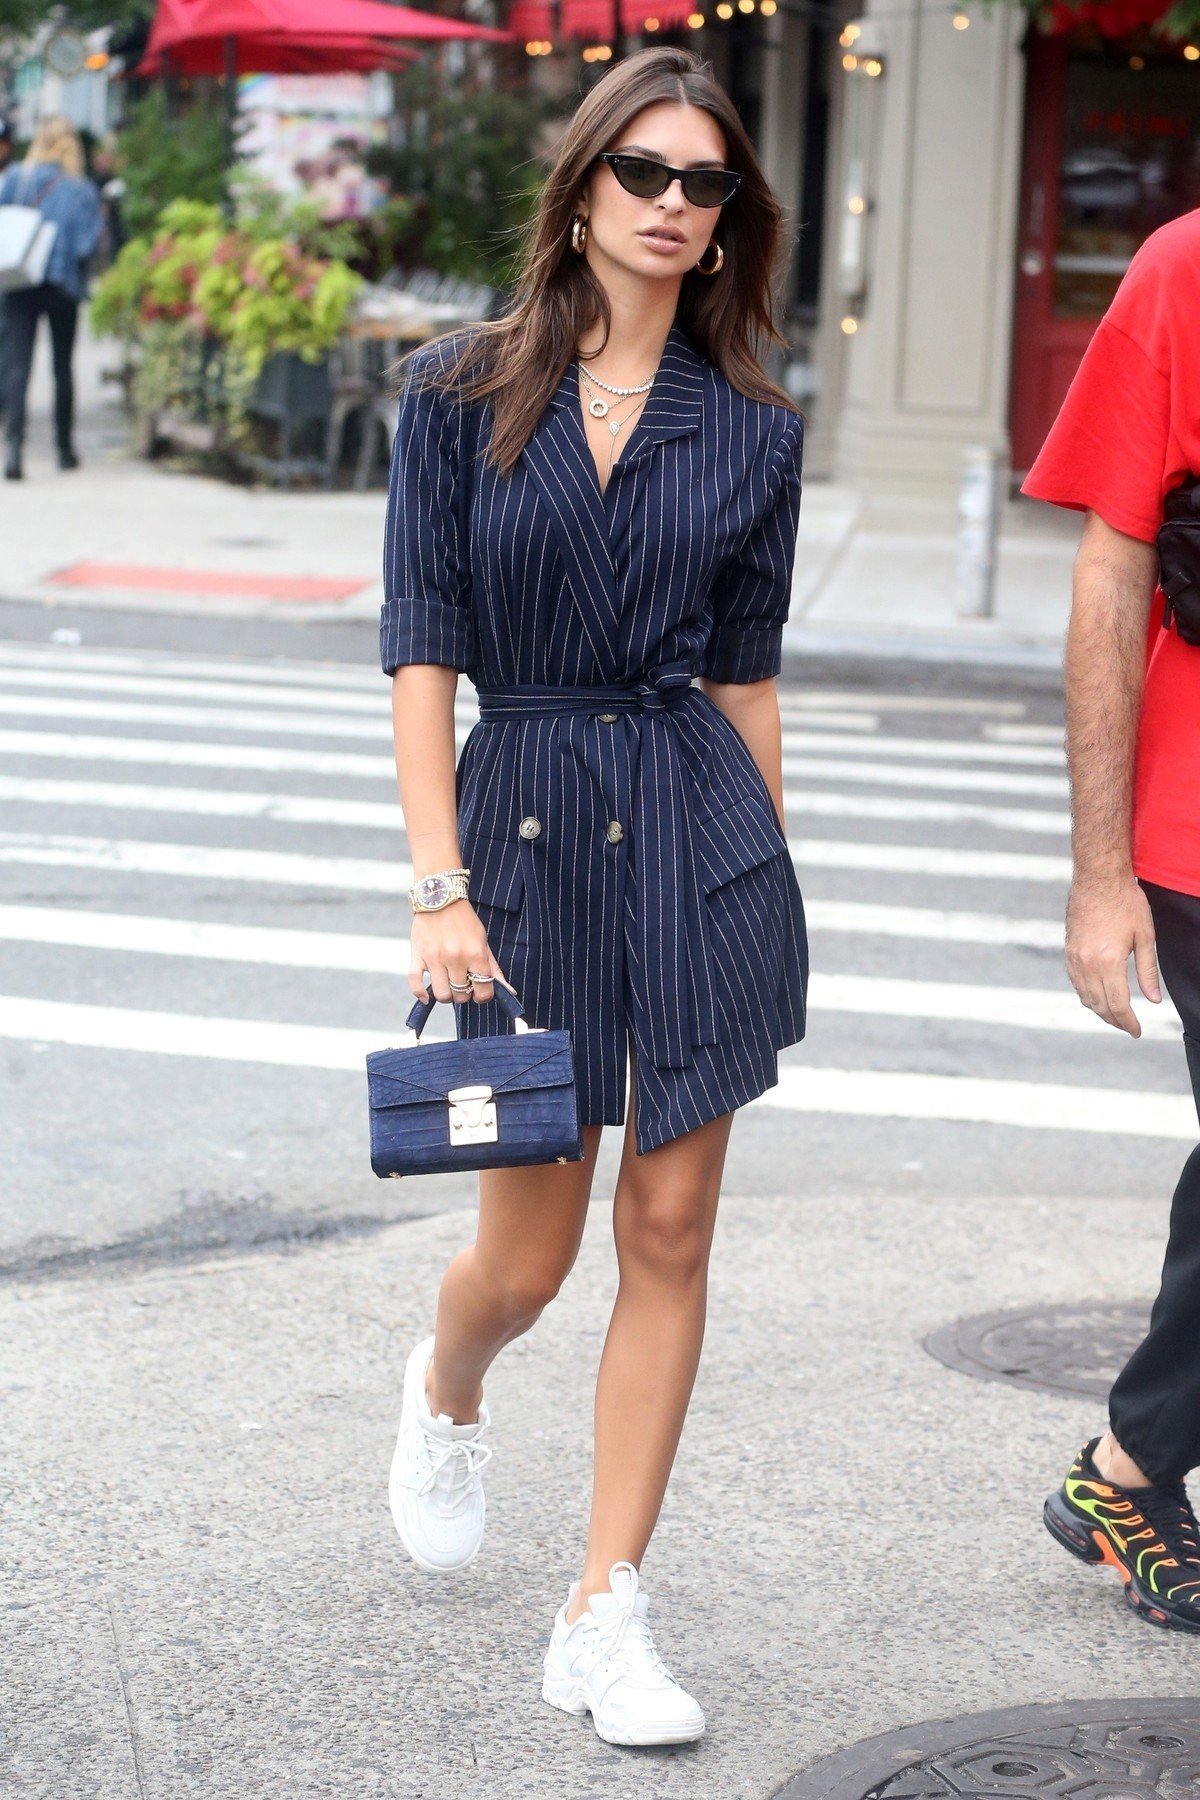 New York, NY  - Emily Ratajkowski sports a navy blue, menswear-inspired, pinstriped shirt dress while out in New York. The model accessorized her outfit with a tiny blue purse.  Pictured: Emily Ratajkowski    *UK Clients - Pictures Containing Children Please Pixelate Face Prior To Publication*, Image: 386310776, License: Rights-managed, Restrictions: , Model Release: no, Credit line: Profimedia, AKM-GSI